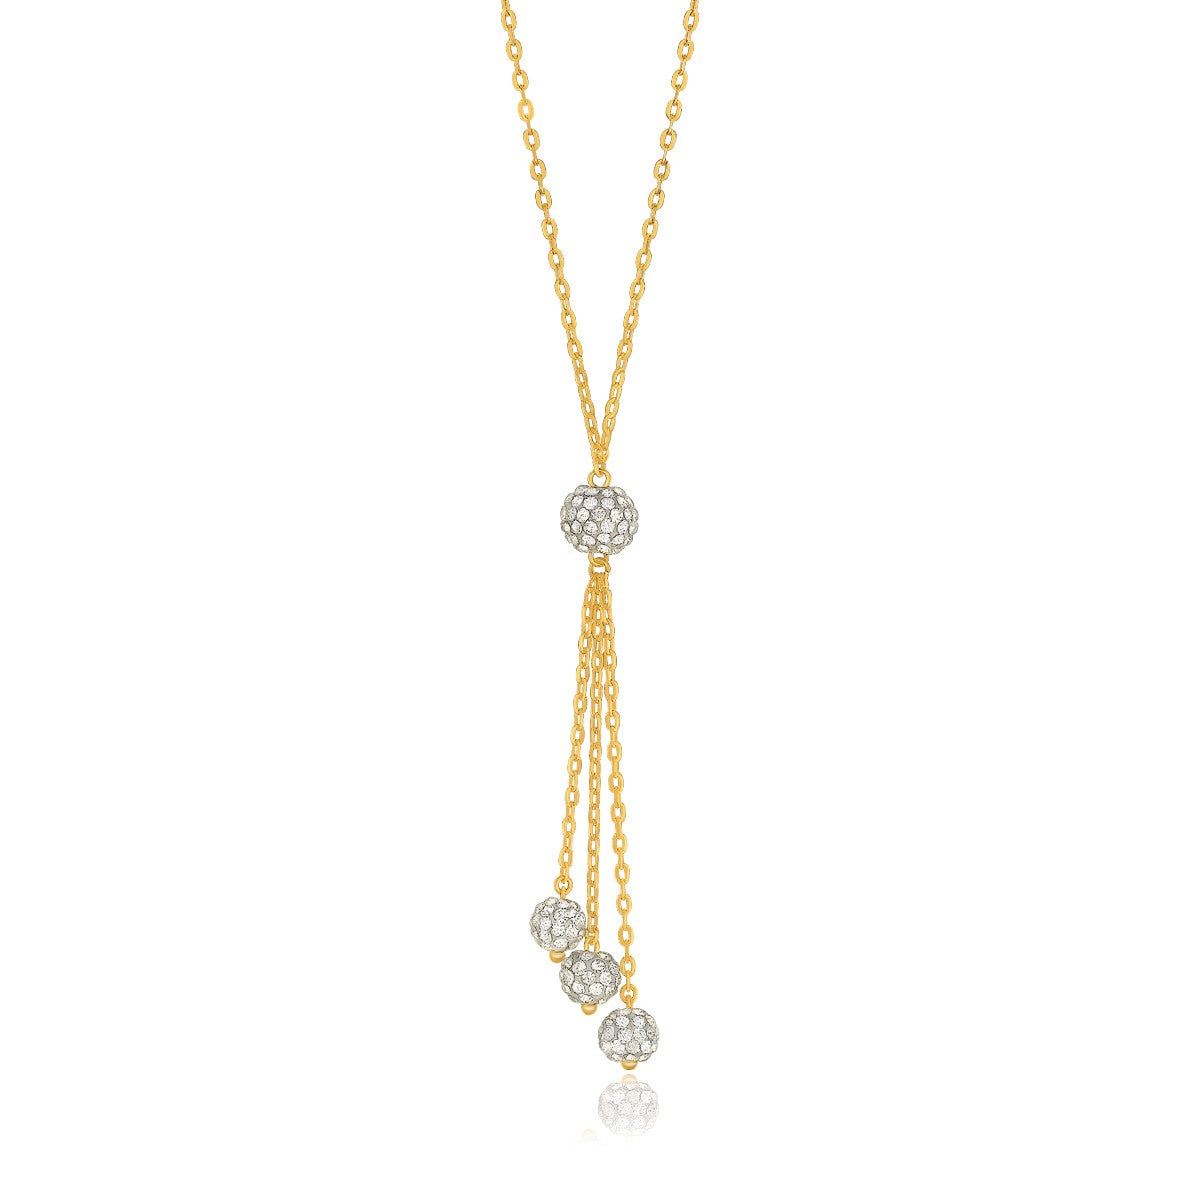 Unique Hollywood Style 14K Yellow Gold 17'' Necklace with Triple Ball Drop Pendant